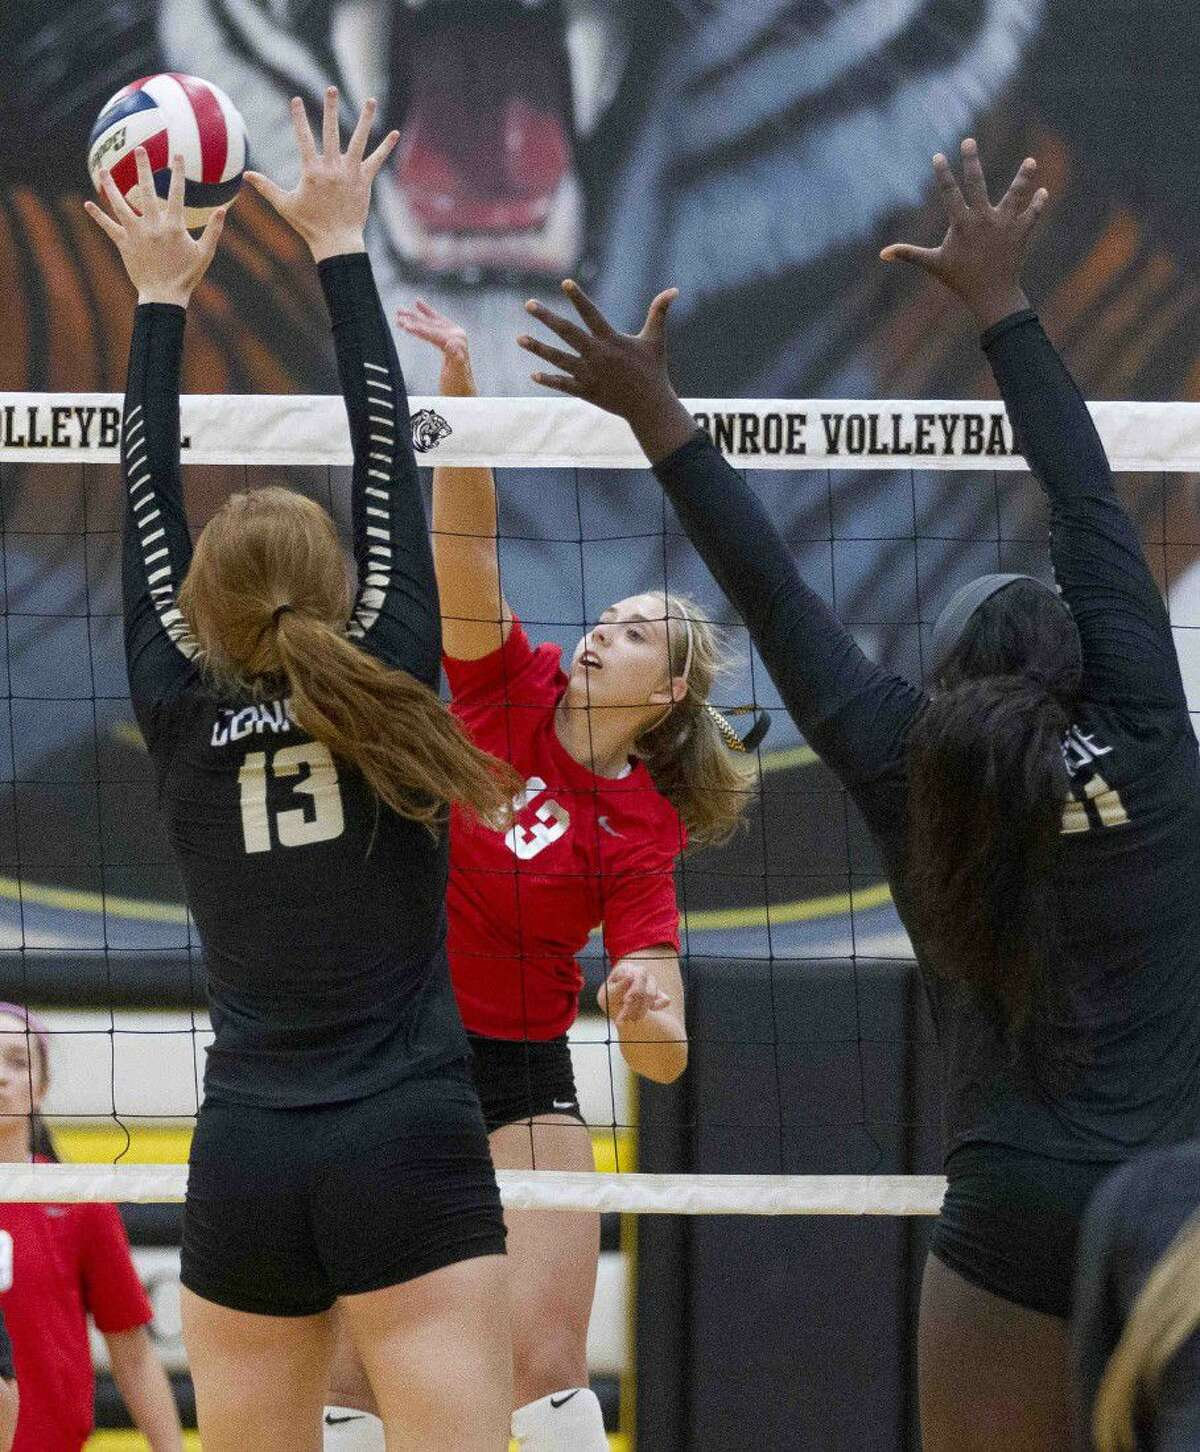 Oak Ridge outside hitter Brooke Clark (13) gets a shot past Conroe middle blocker Jozy Rodel (13) and right side hitter Tiarra Moore (51) during the first set of a District 12-6A volleyball match Tuesday, Sept. 20, 2016, in Conroe. Go to HCNpics.com to view more photos from the game.